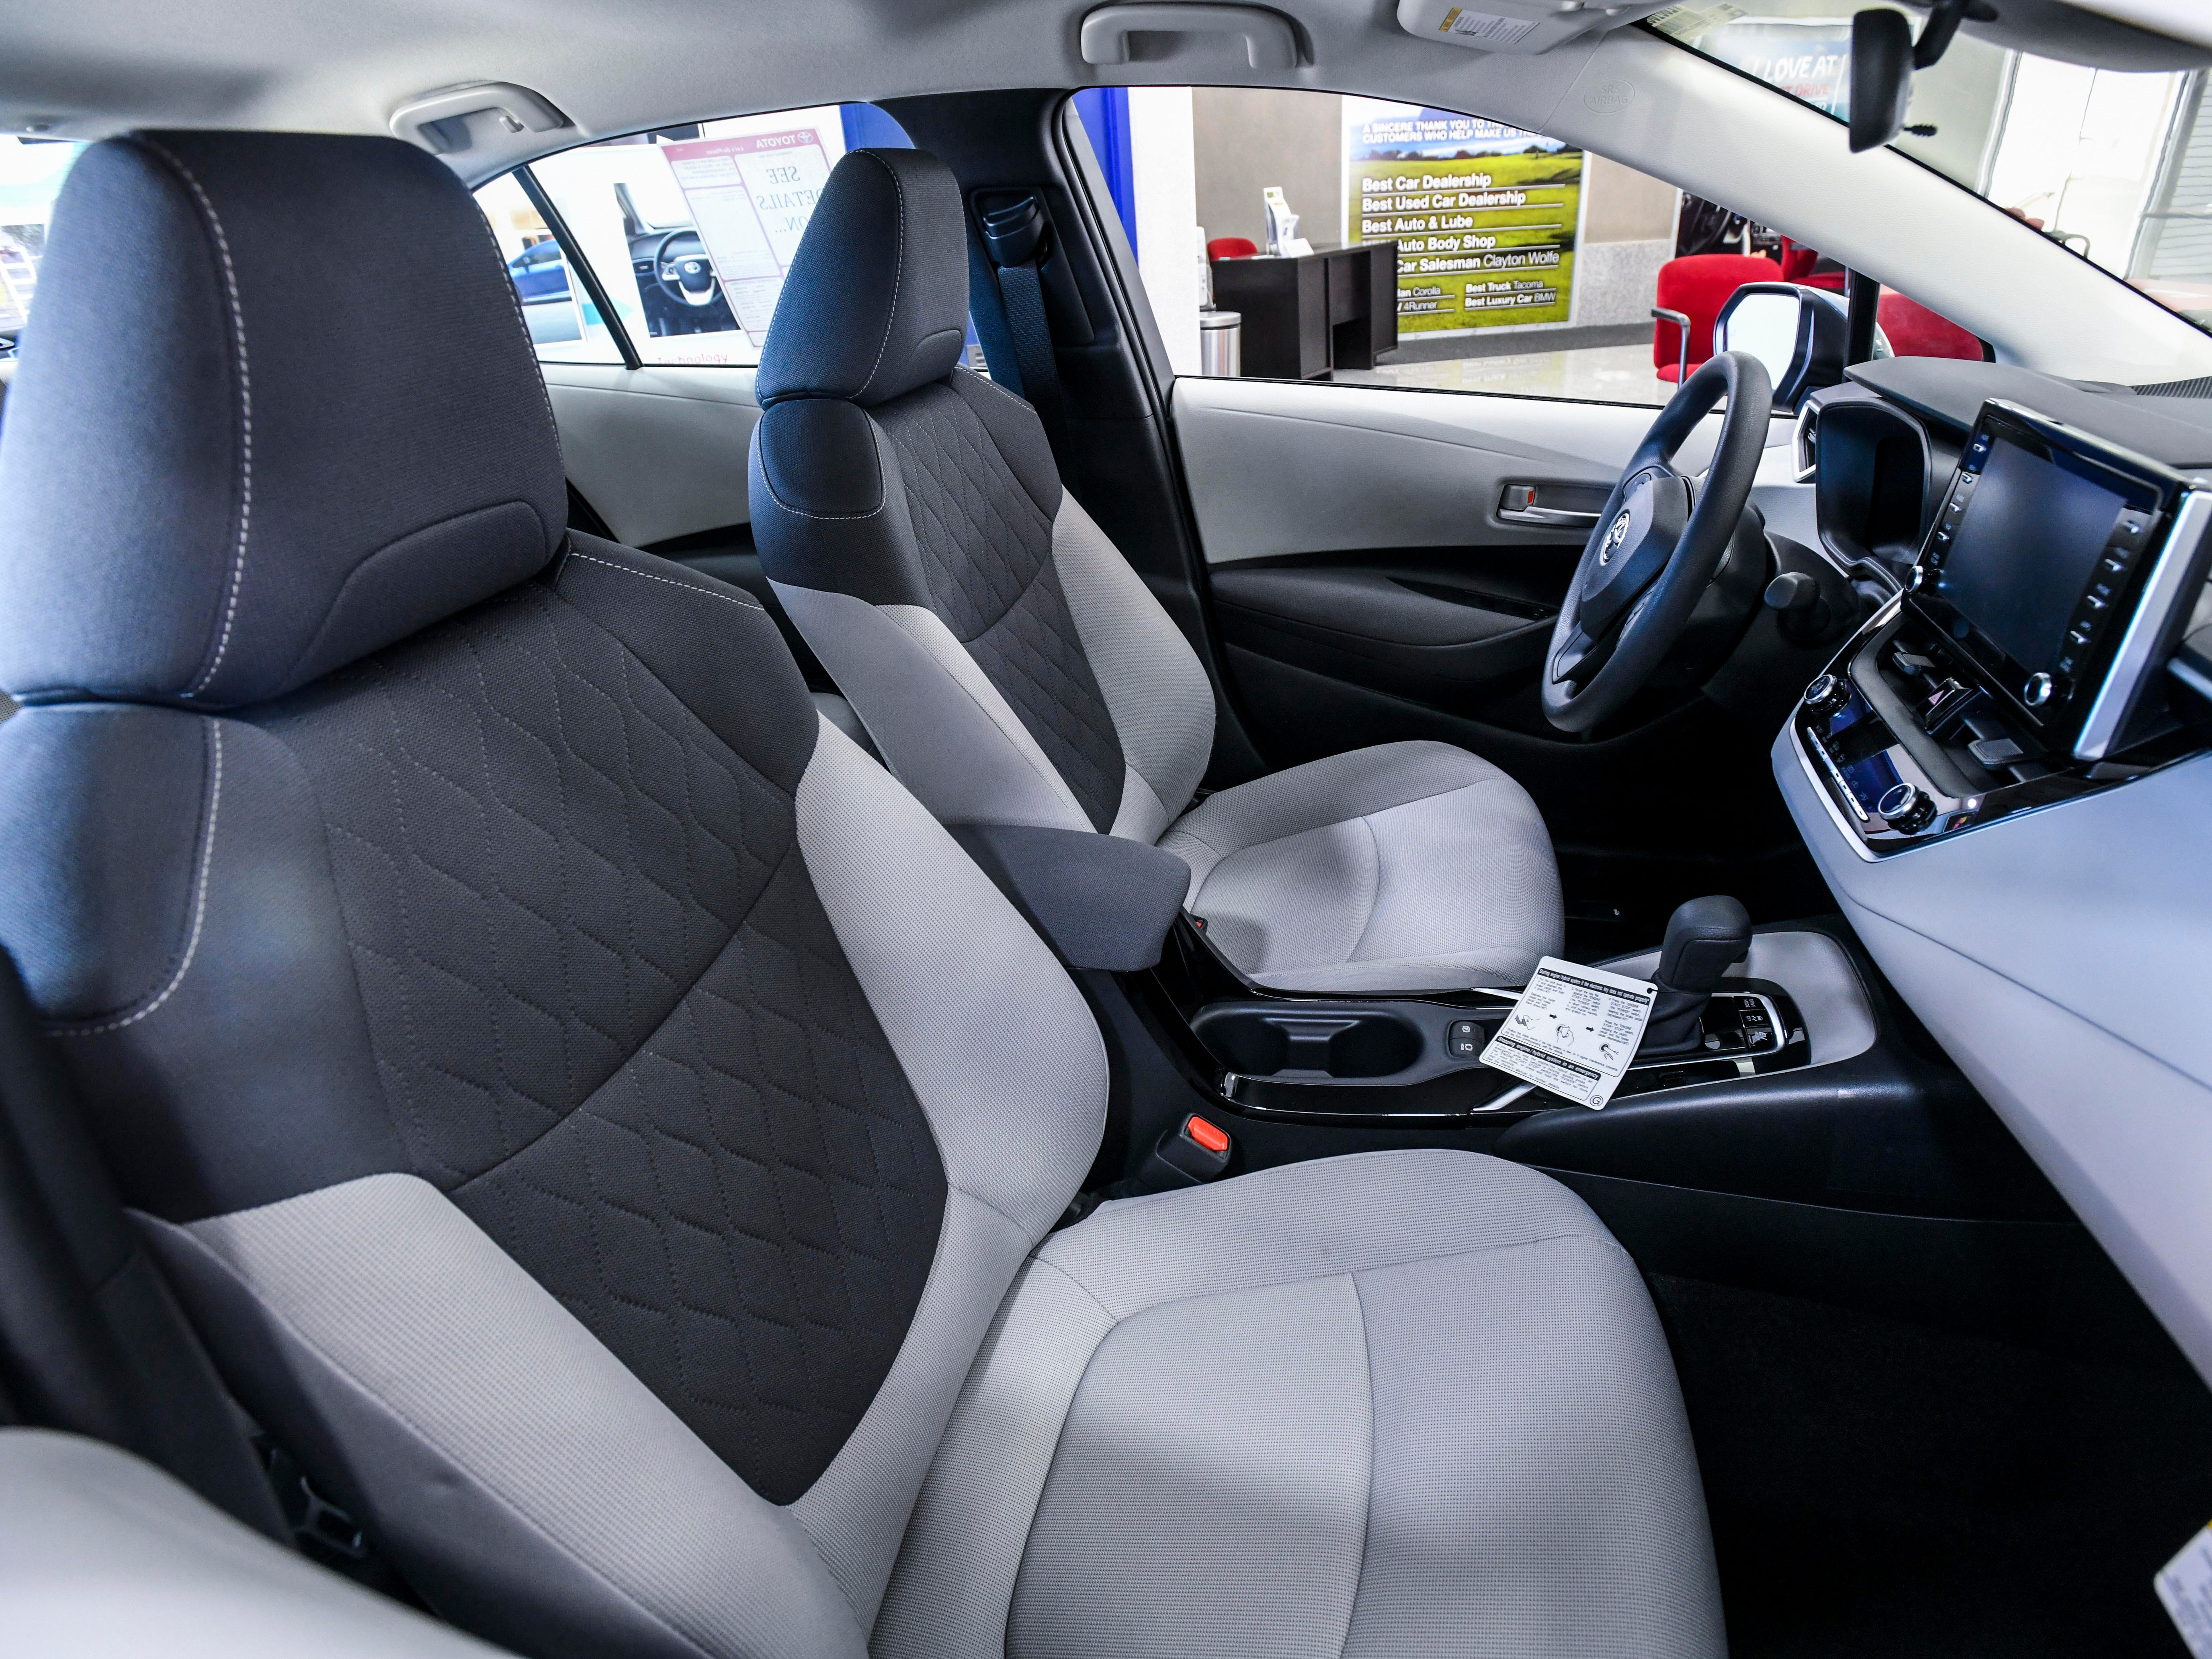 A look at the front seat interior of the 2020 Toyota Corolla HE (Hybrid Edition), as seen on the showroom floor of the Atkins Kroll dealership, in Tamuning on Saturday, Feb. 9, 2019. The newly redesigned vehicle is one of three models introduced and available at Atkins Kroll Toyota. Other models include the Toyota Corolla LE (Luxury Edition) and the Toyota Corolla SE (Sport Edition).